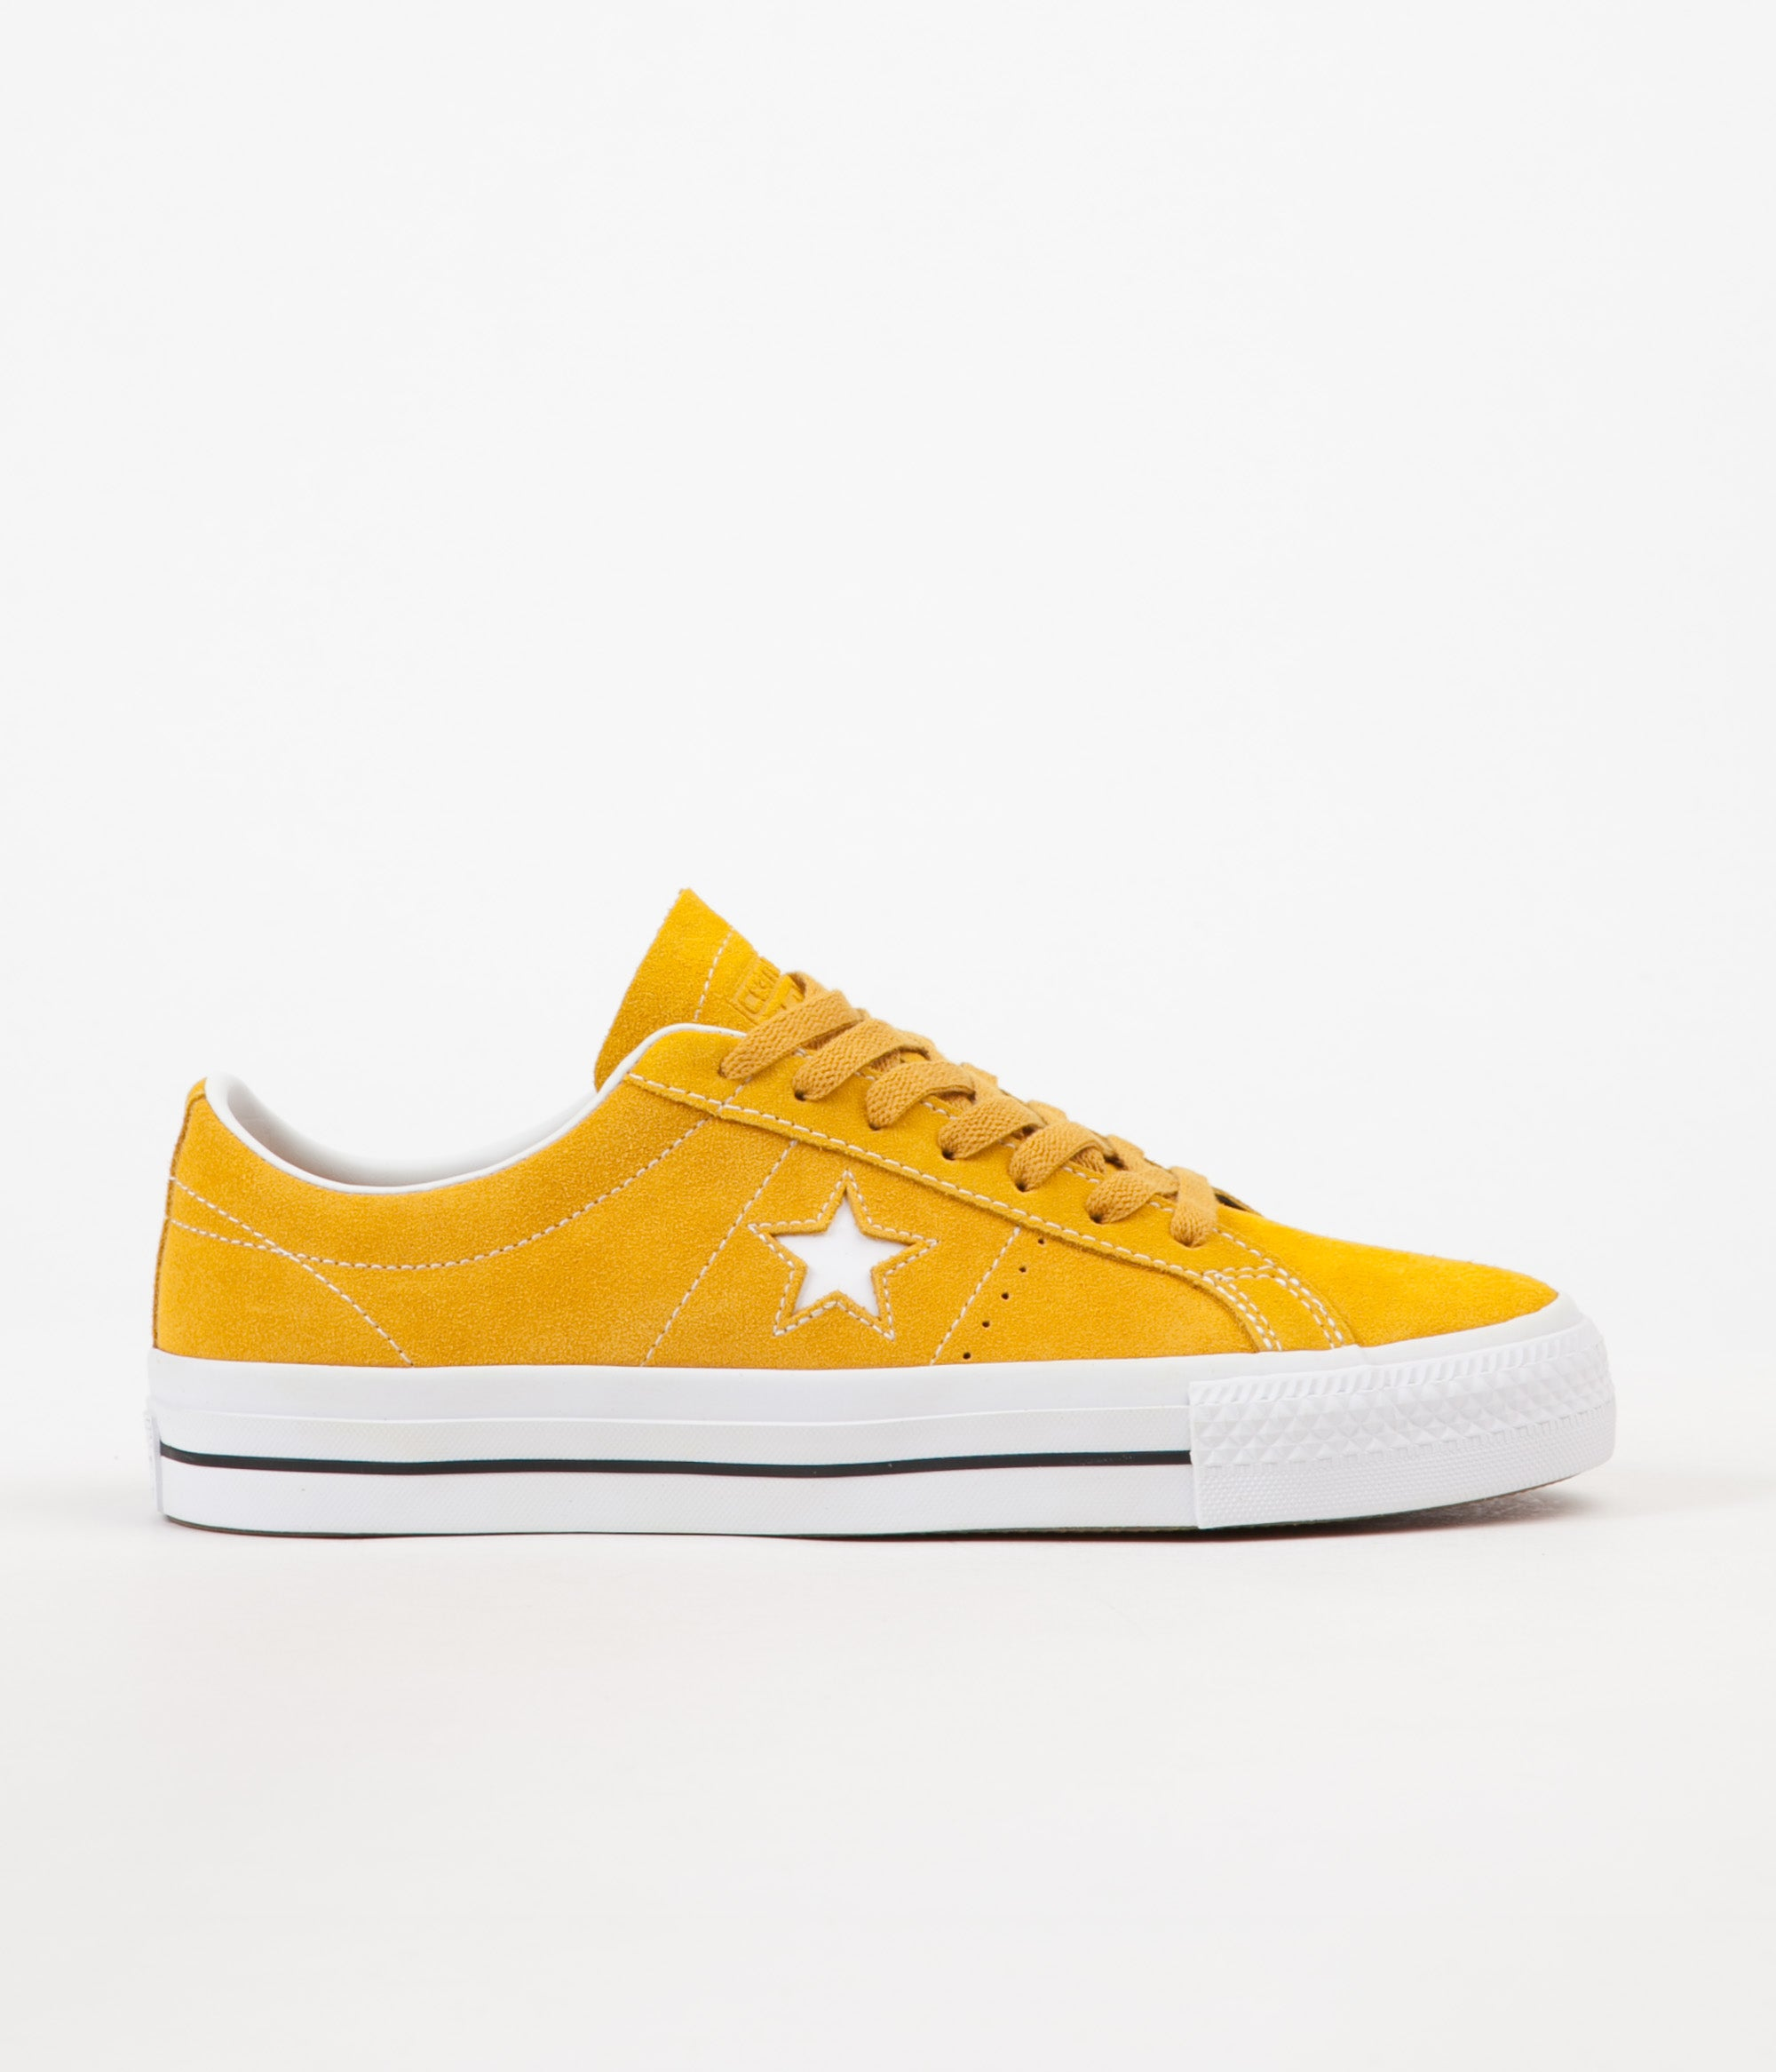 85af2b82cee268 Converse One Star Pro Ox Shoes - Mineral Yellow   White   Black ...